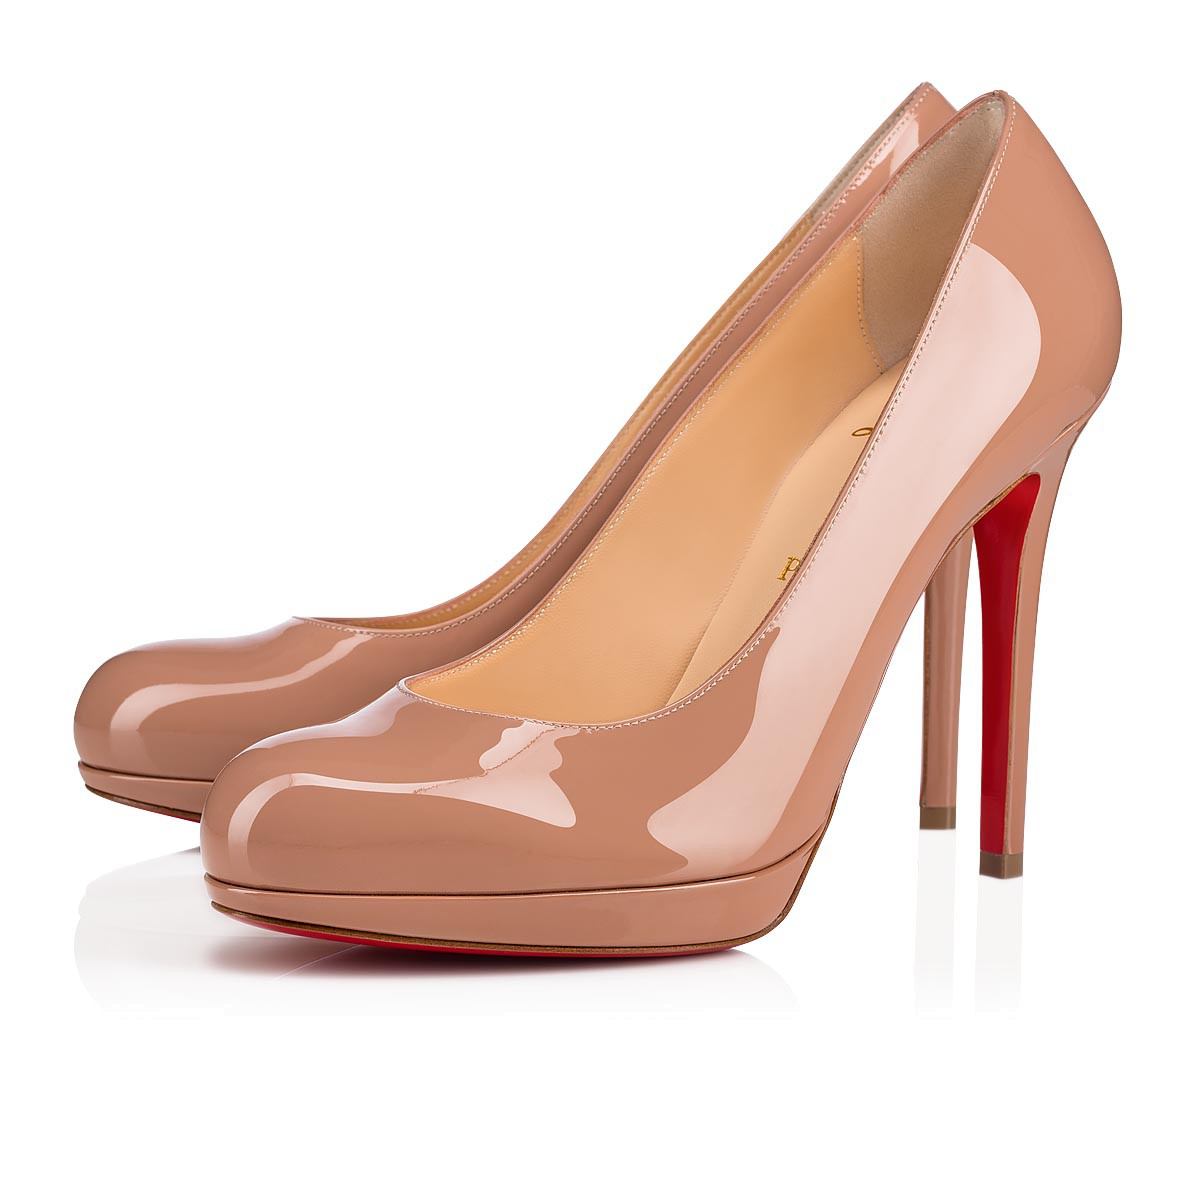 ウィメンズシューズ - New Simple Pump - Christian Louboutin